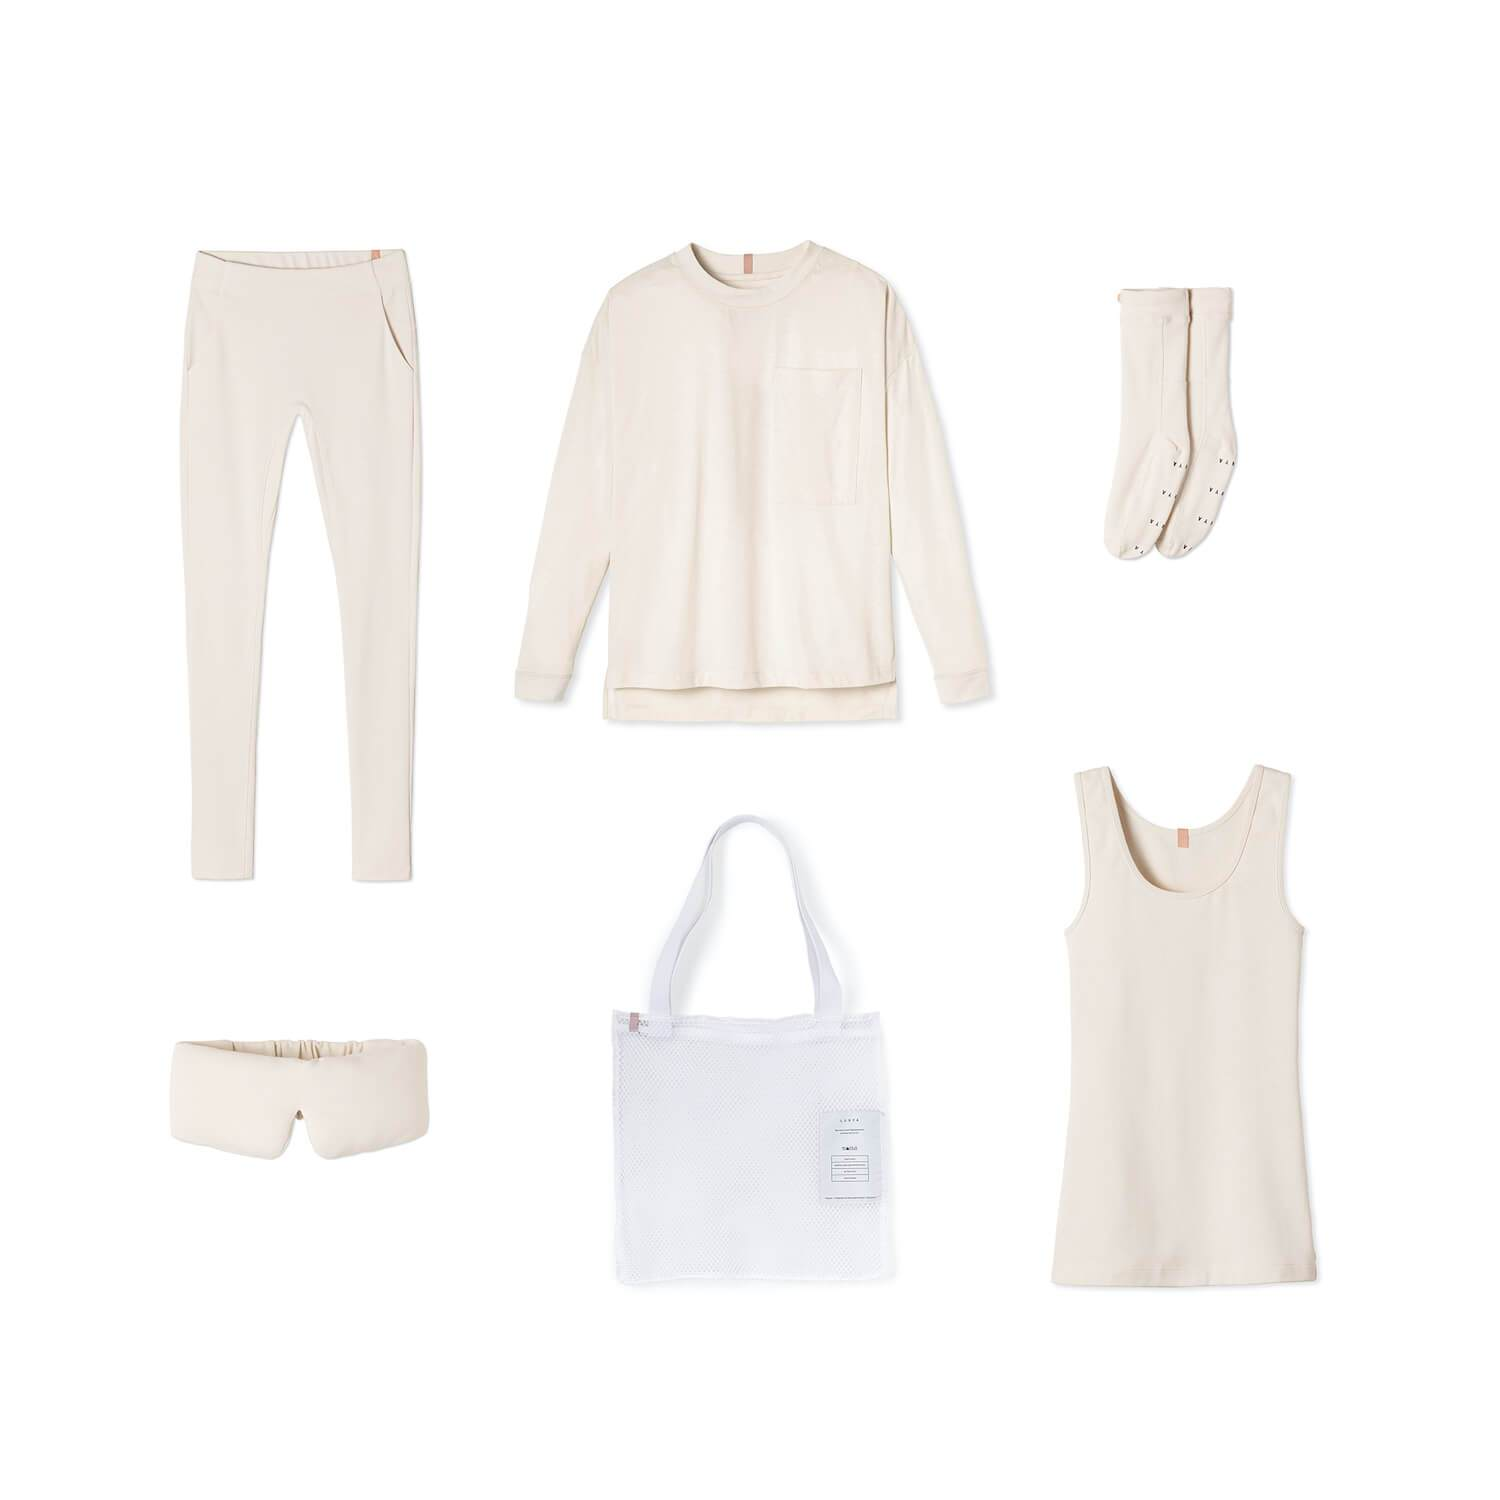 Lunya Sleepwear Restore Pima Travel Kit - #Latte